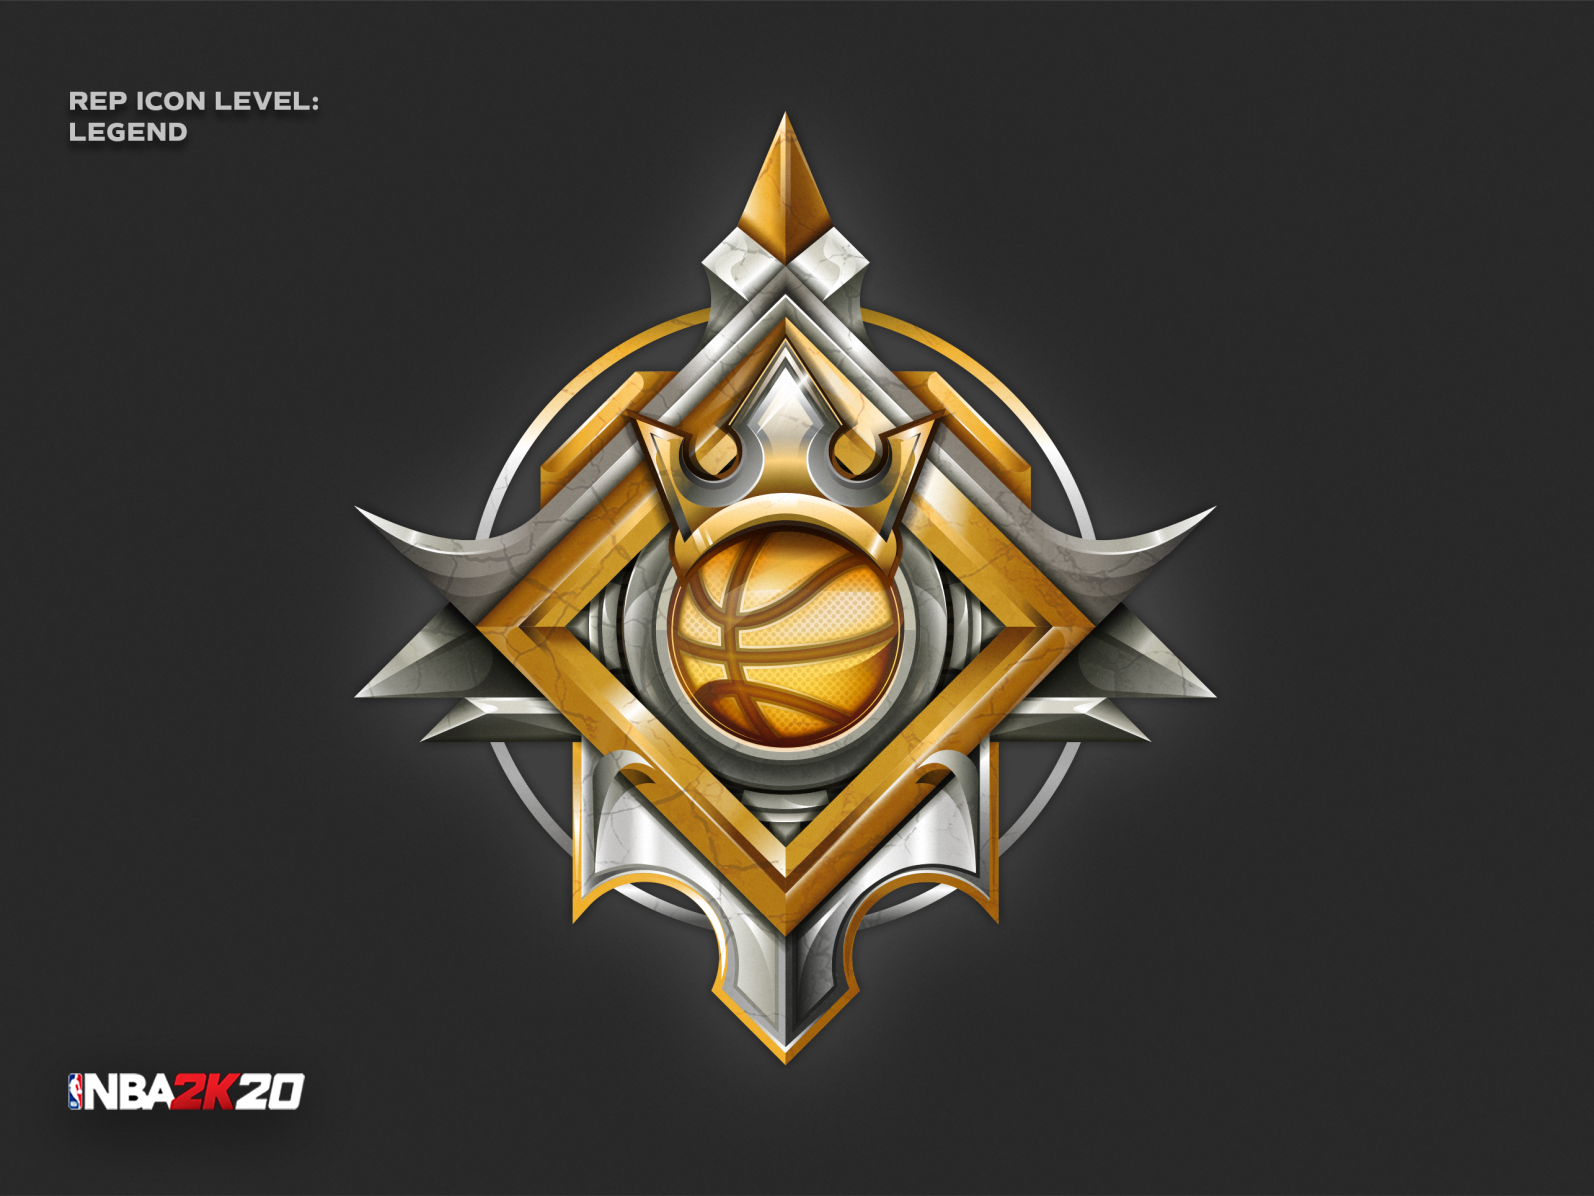 Legend Rep Icon By Michal Ruchel On Dribbble